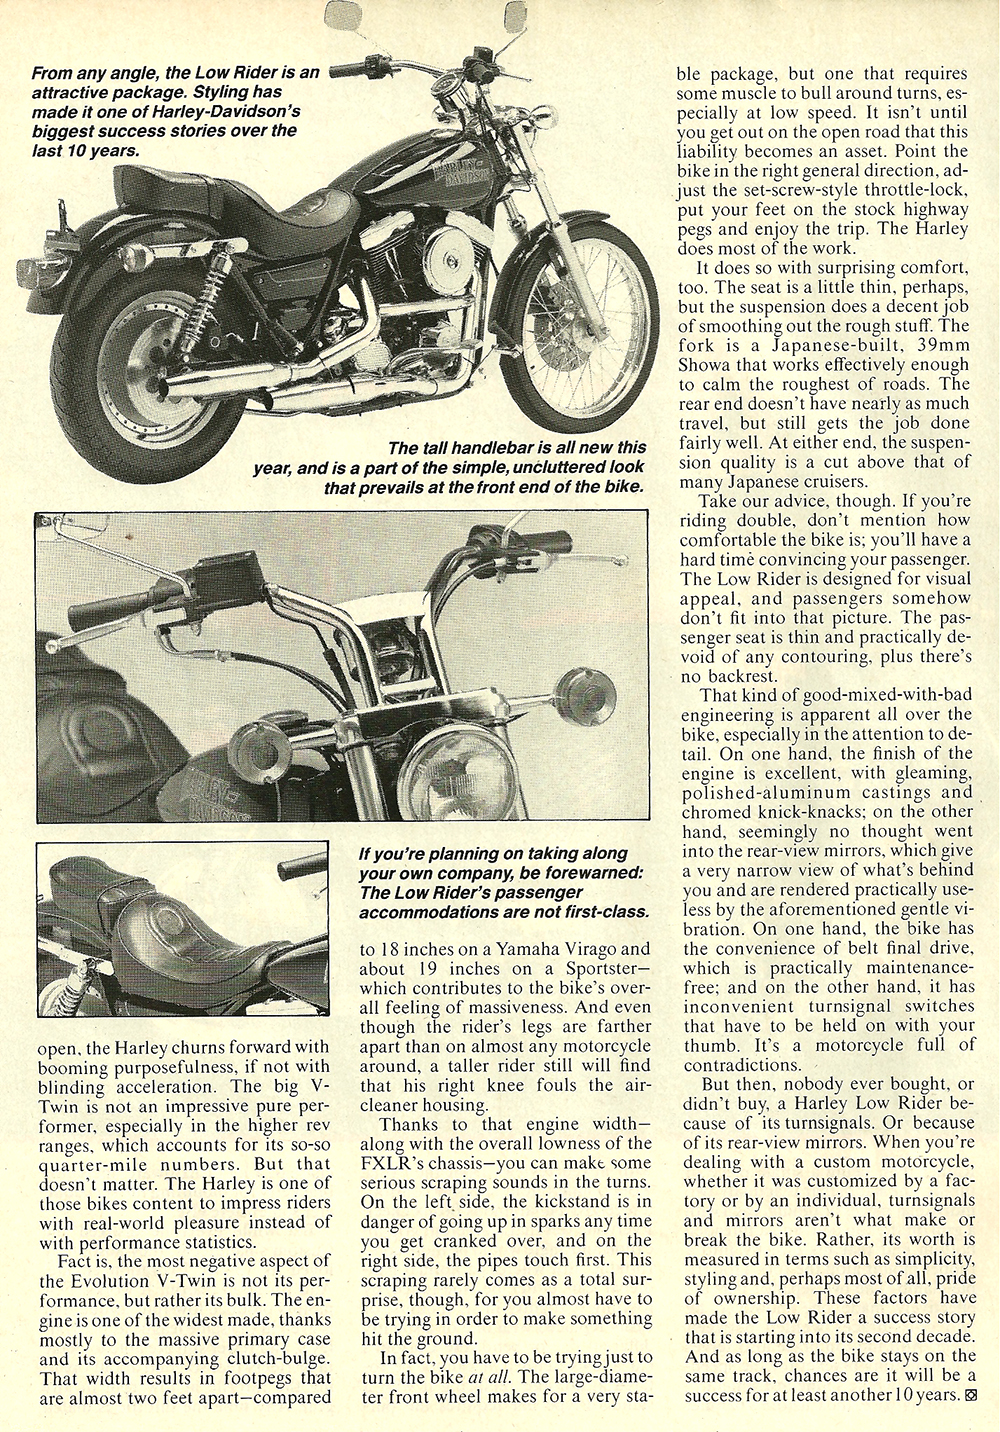 1987 Harley low rider custom fxlr road test 03.jpg